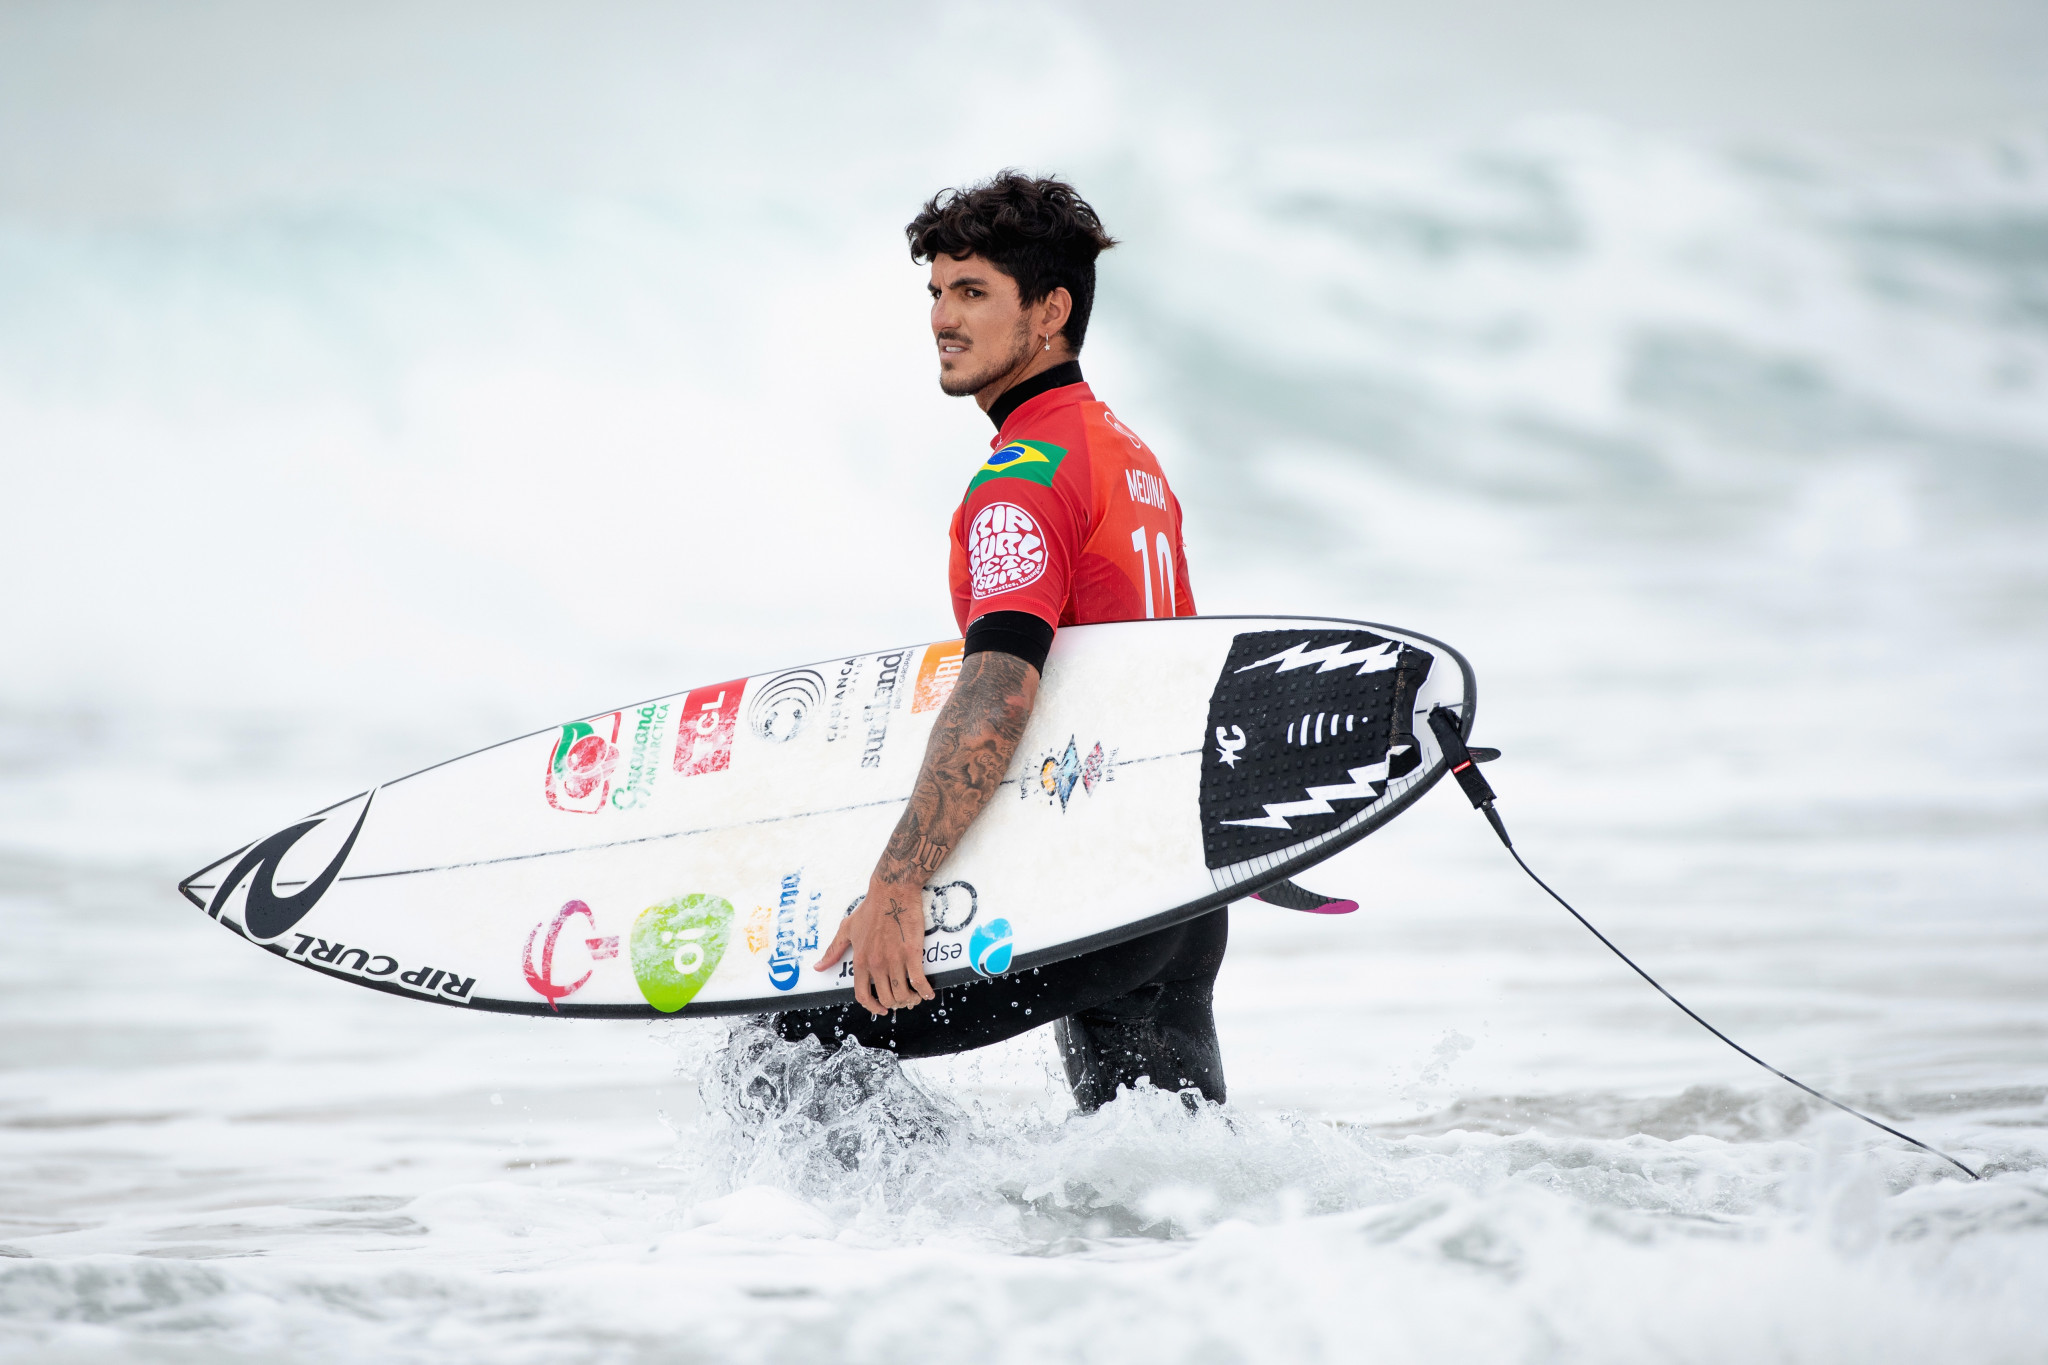 Medina wins third title and Moore fifth as shark sightings interrupt WSL Finals in California